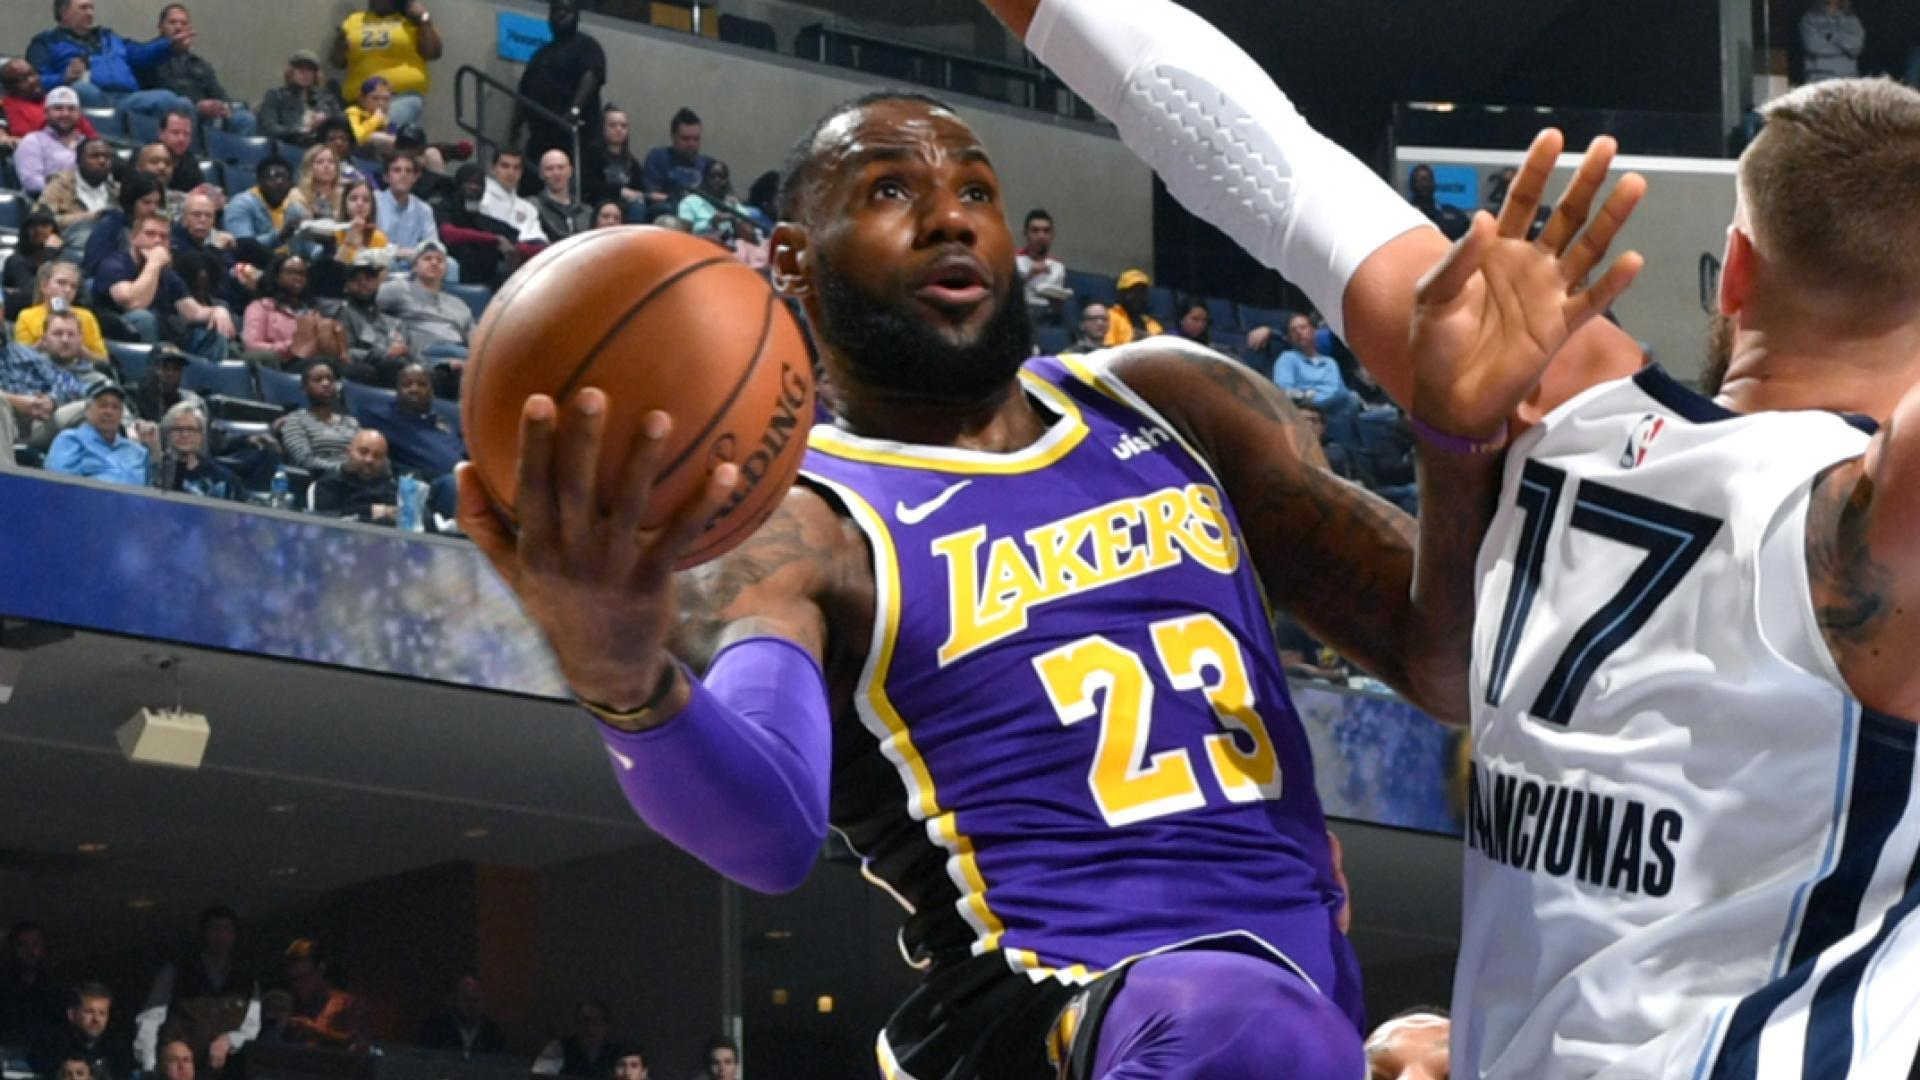 LeBron moves to 10th on all-time assists list de904eedd